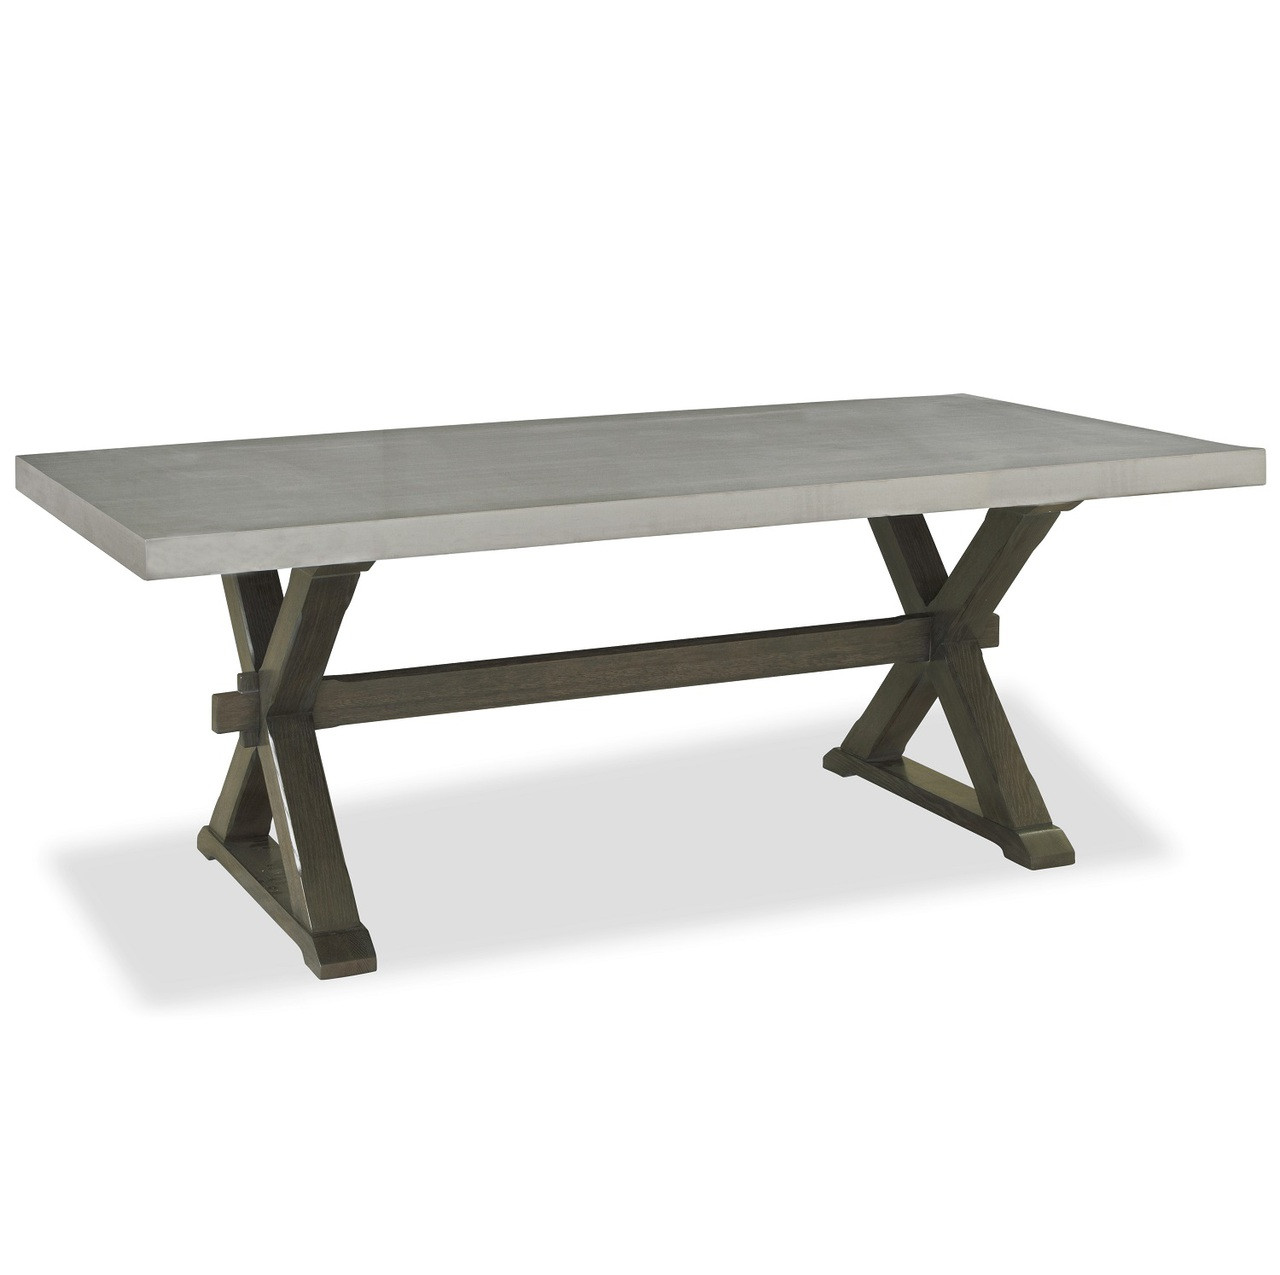 Flatiron Oak Wood Stainless Steel X Base Dining Table  : FlatironOakWoodStainlessSteelXBaseDiningTable310119145020856312801280 from zinhome.com size 1280 x 1275 jpeg 95kB